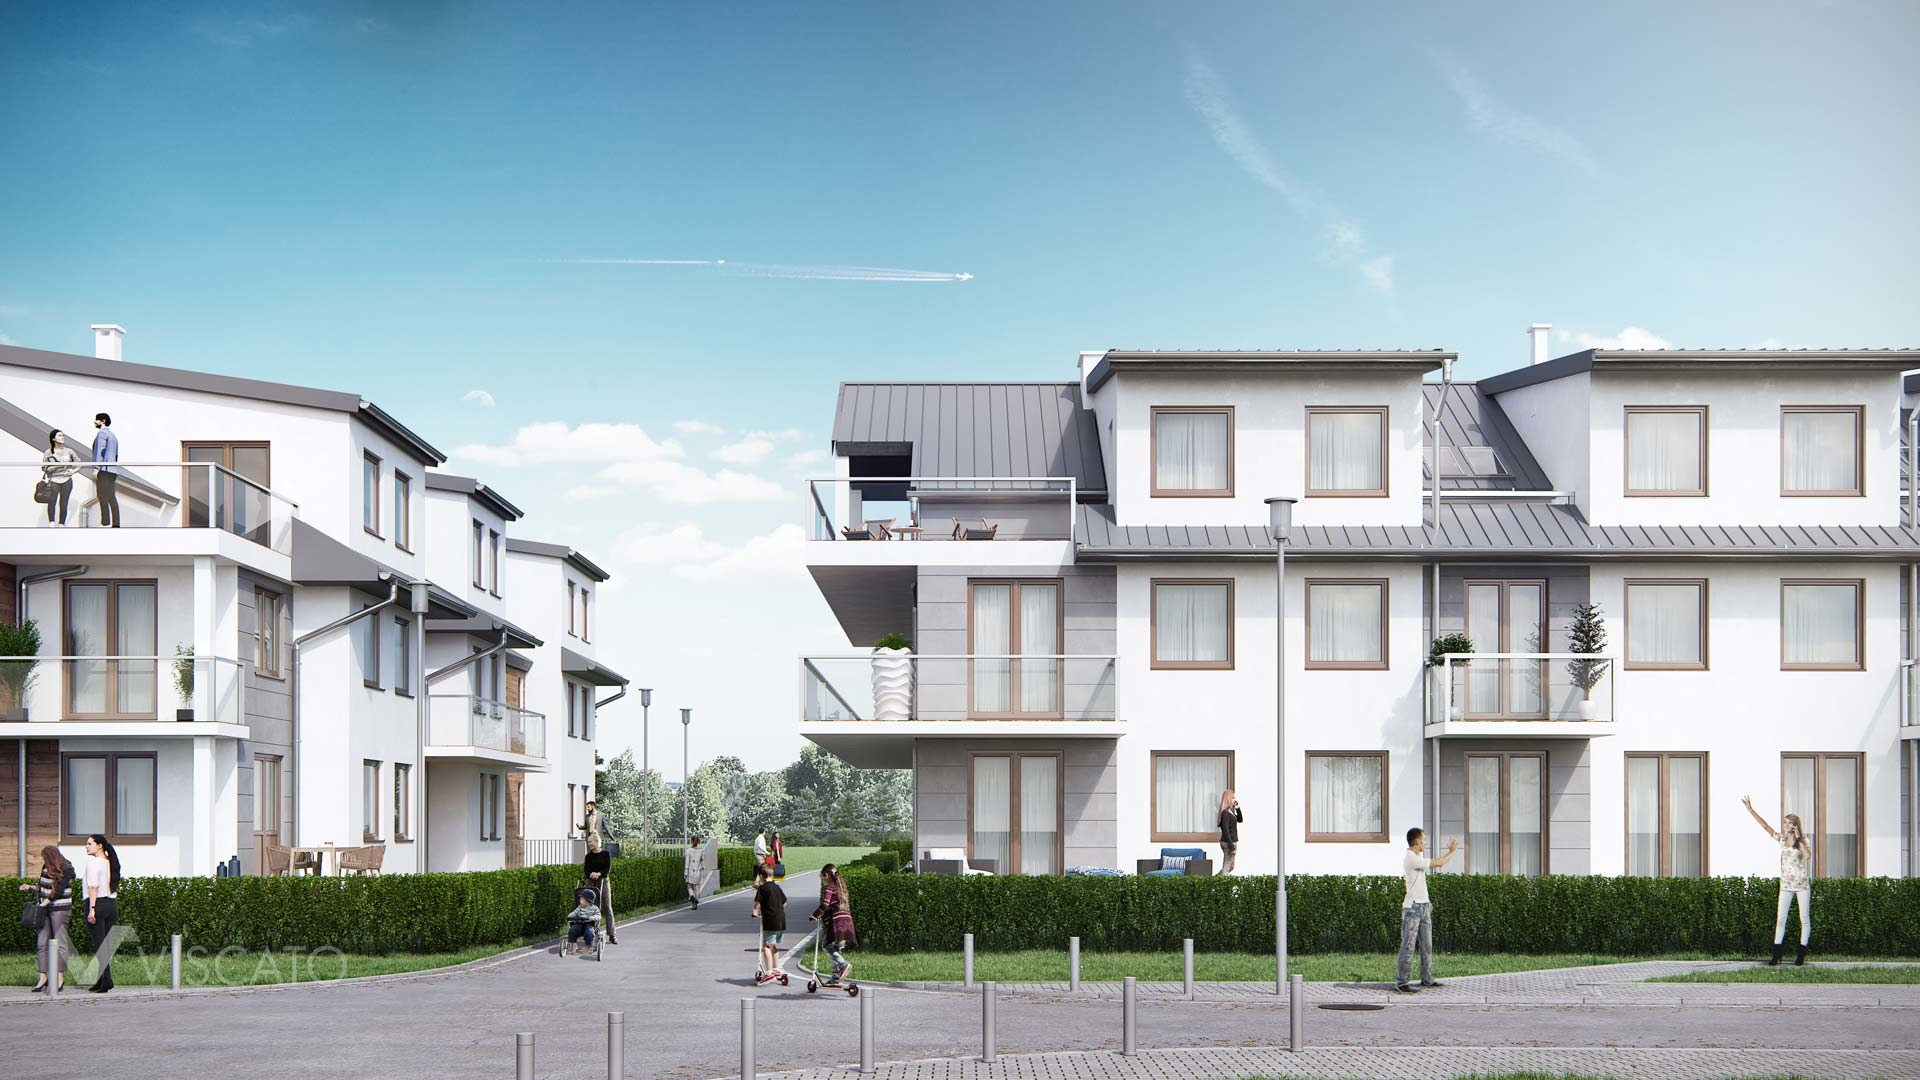 3d exterior rendering of a housing estate, Viscato